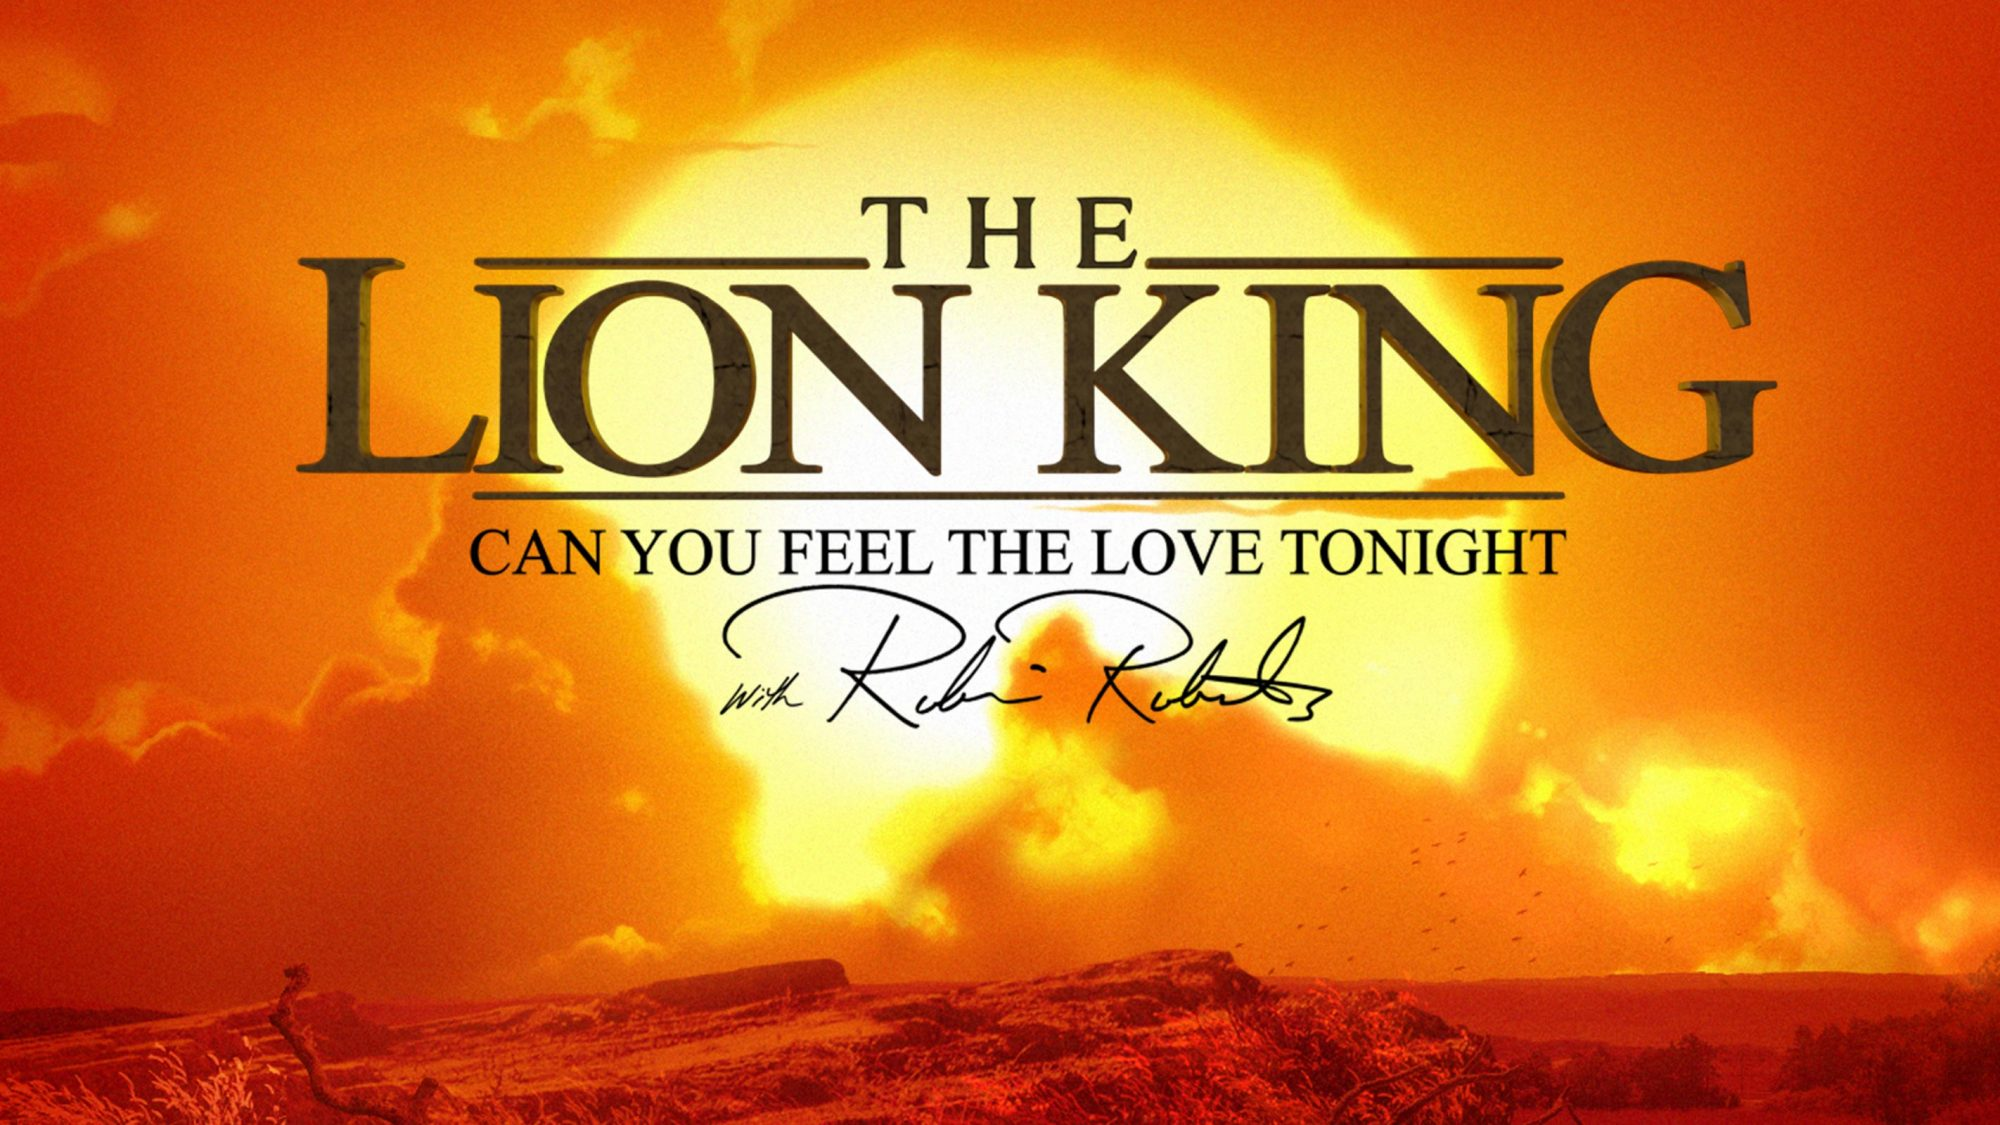 The Lion King Can You Feel The Love Tonight with Robin Roberts